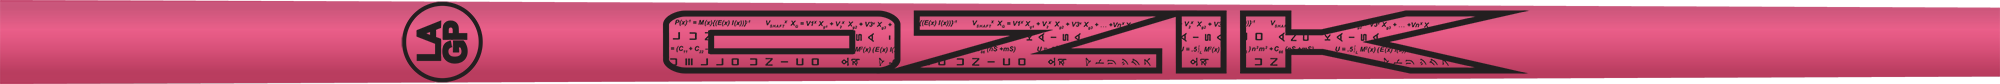 Ozik White Tie: Neon Pink Black Satin - Wood 40 A